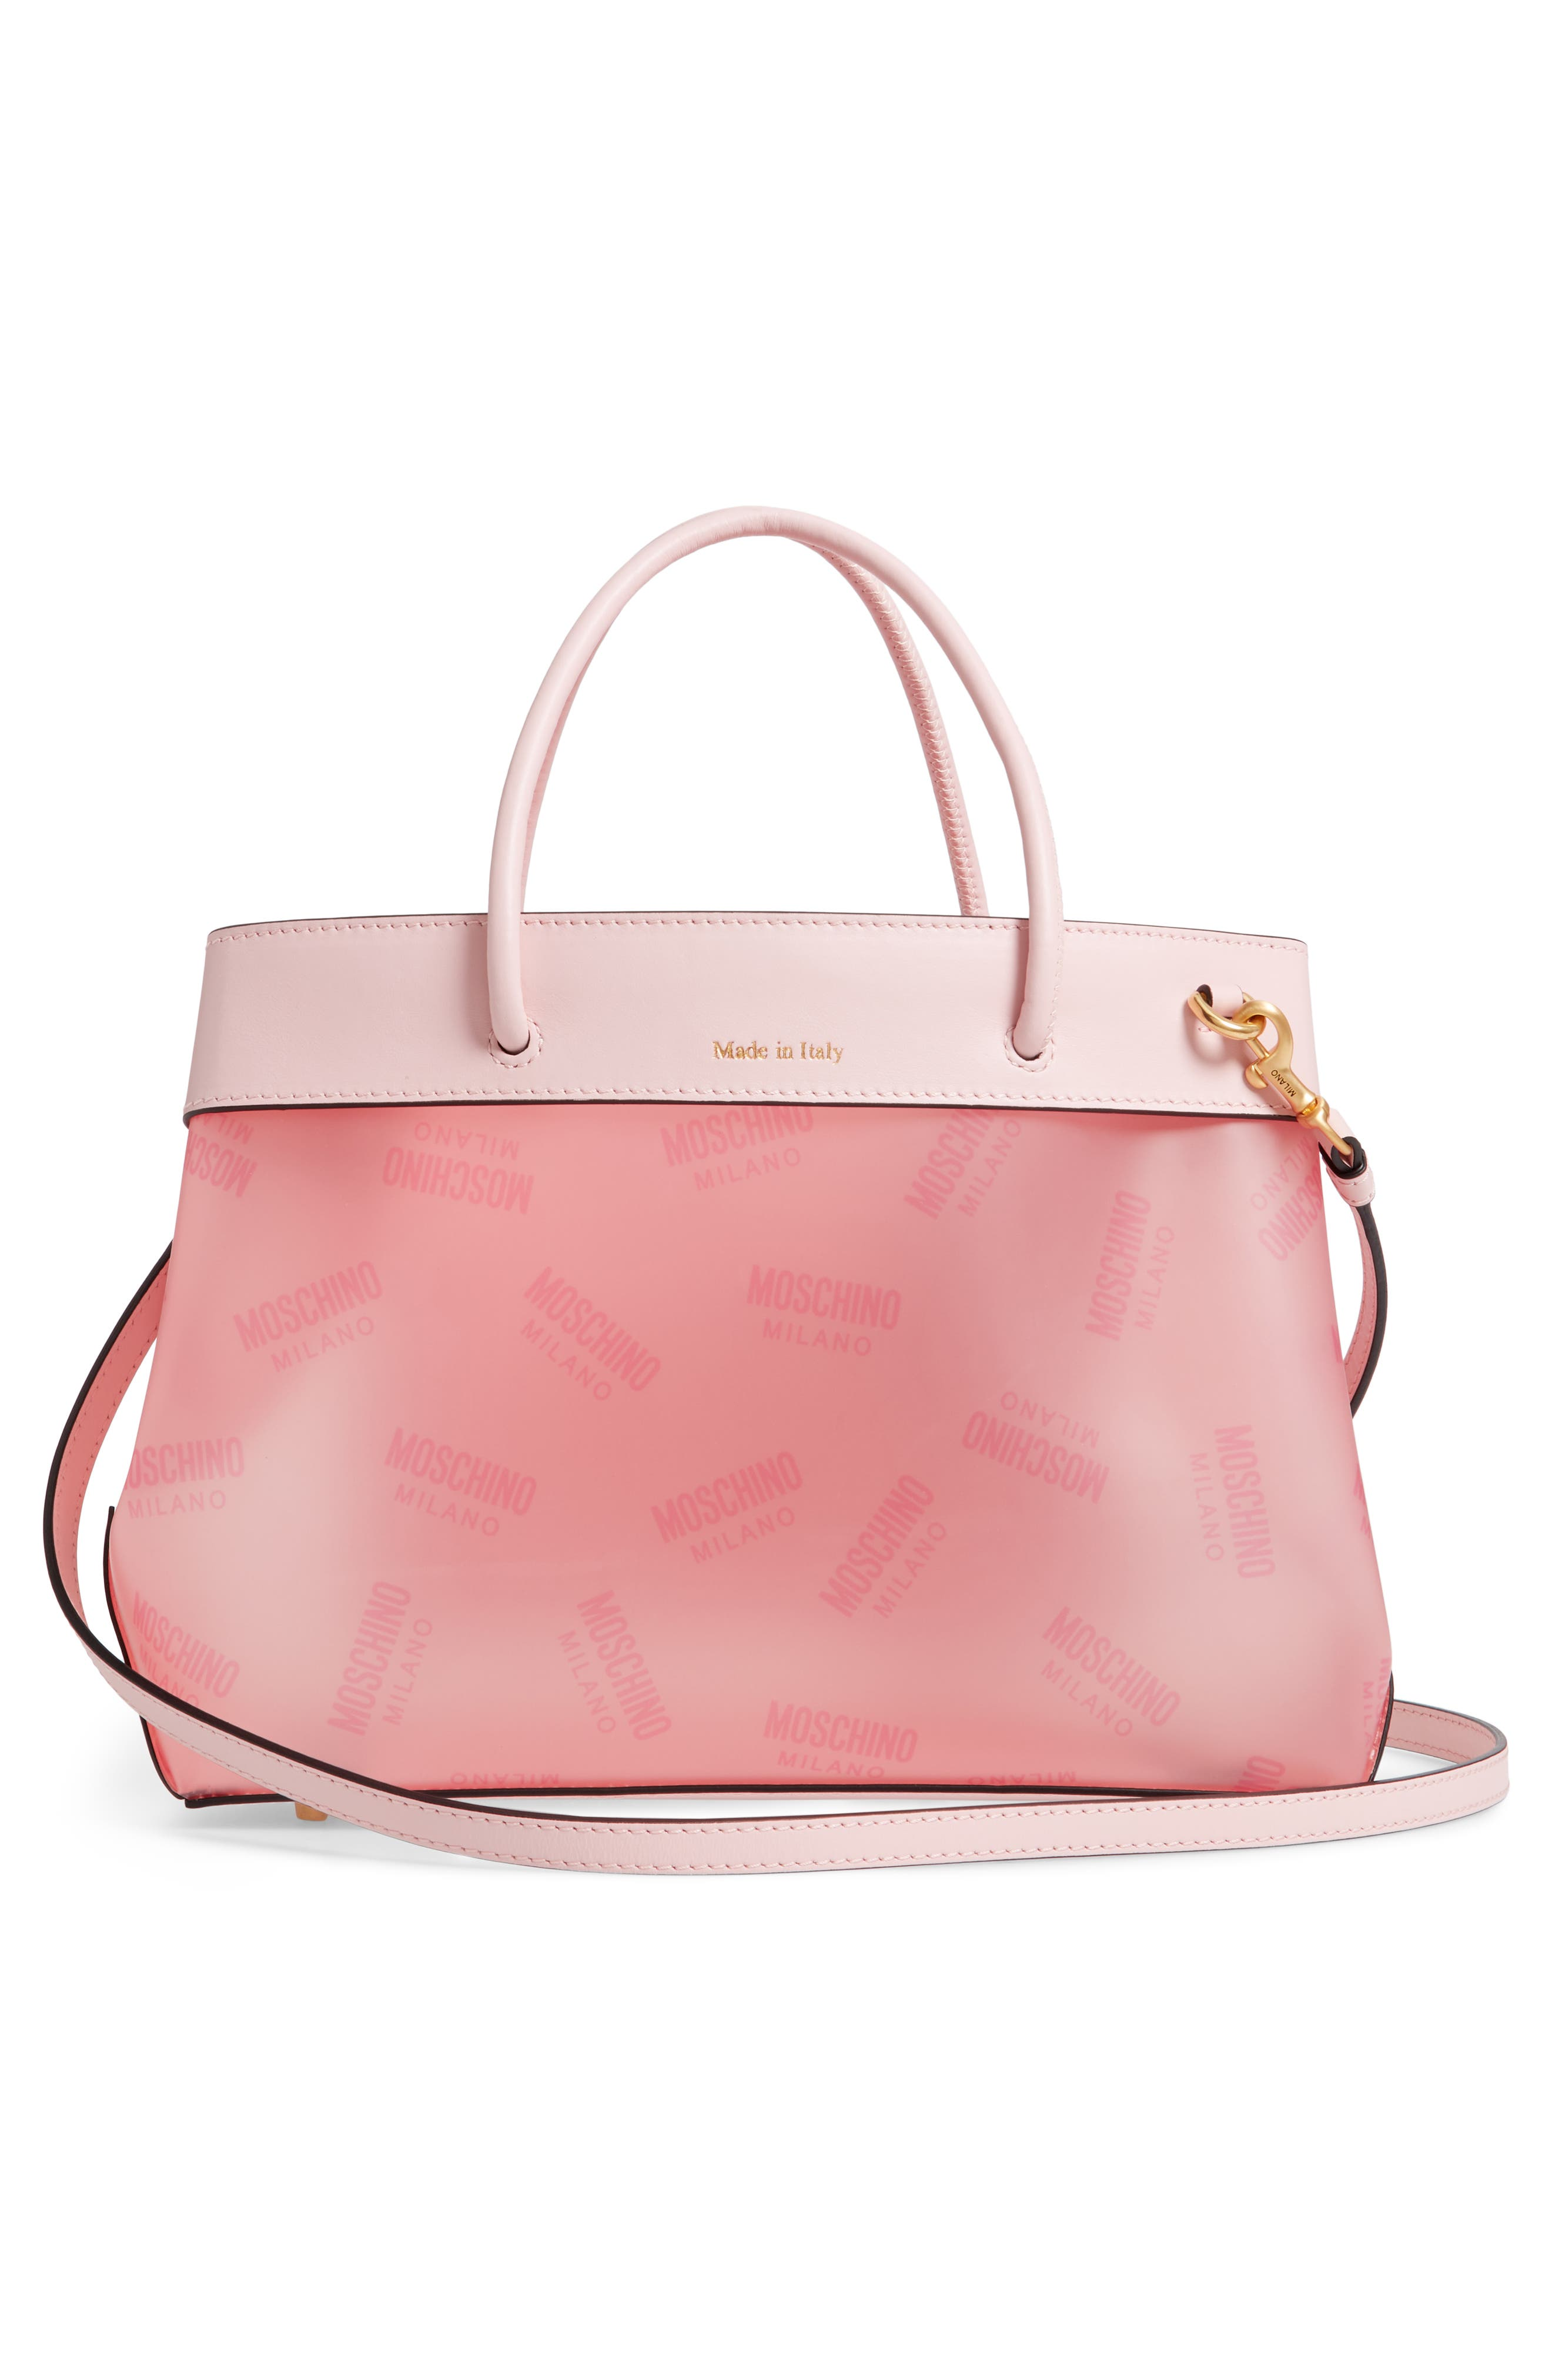 MOSCHINO,                             Translucent Logo Tote,                             Alternate thumbnail 3, color,                             PINK